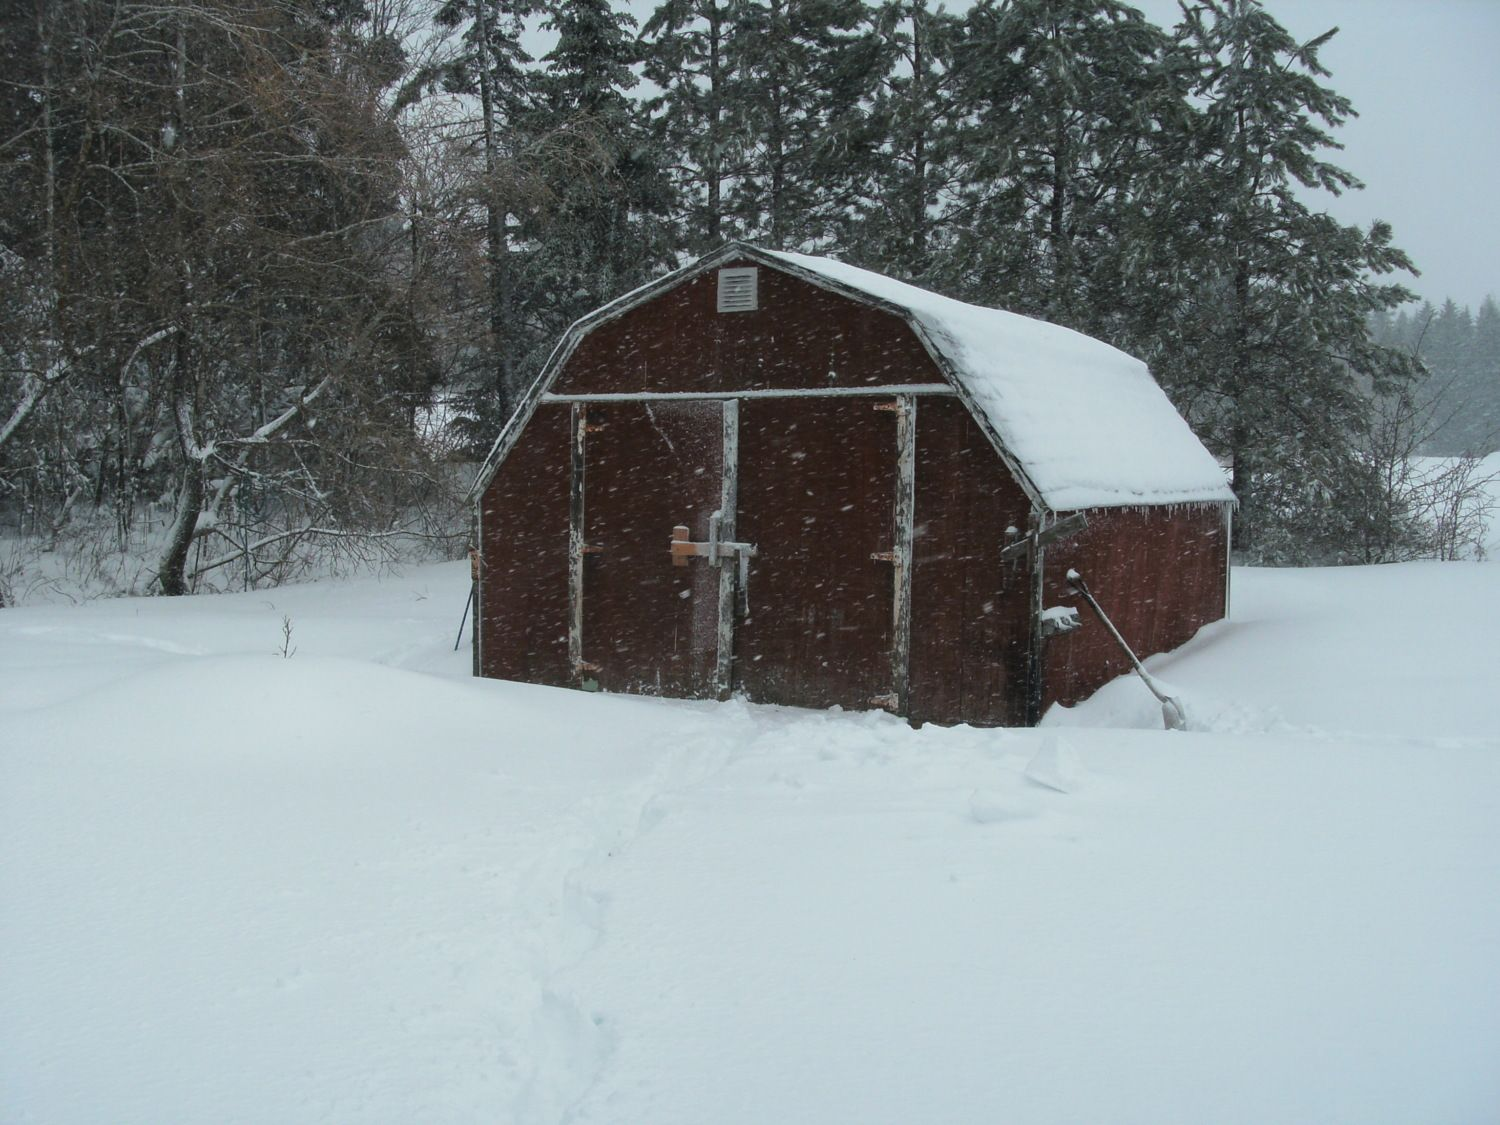 Picture of blustery day outside the loft (baby barn) on December 28th 2012.